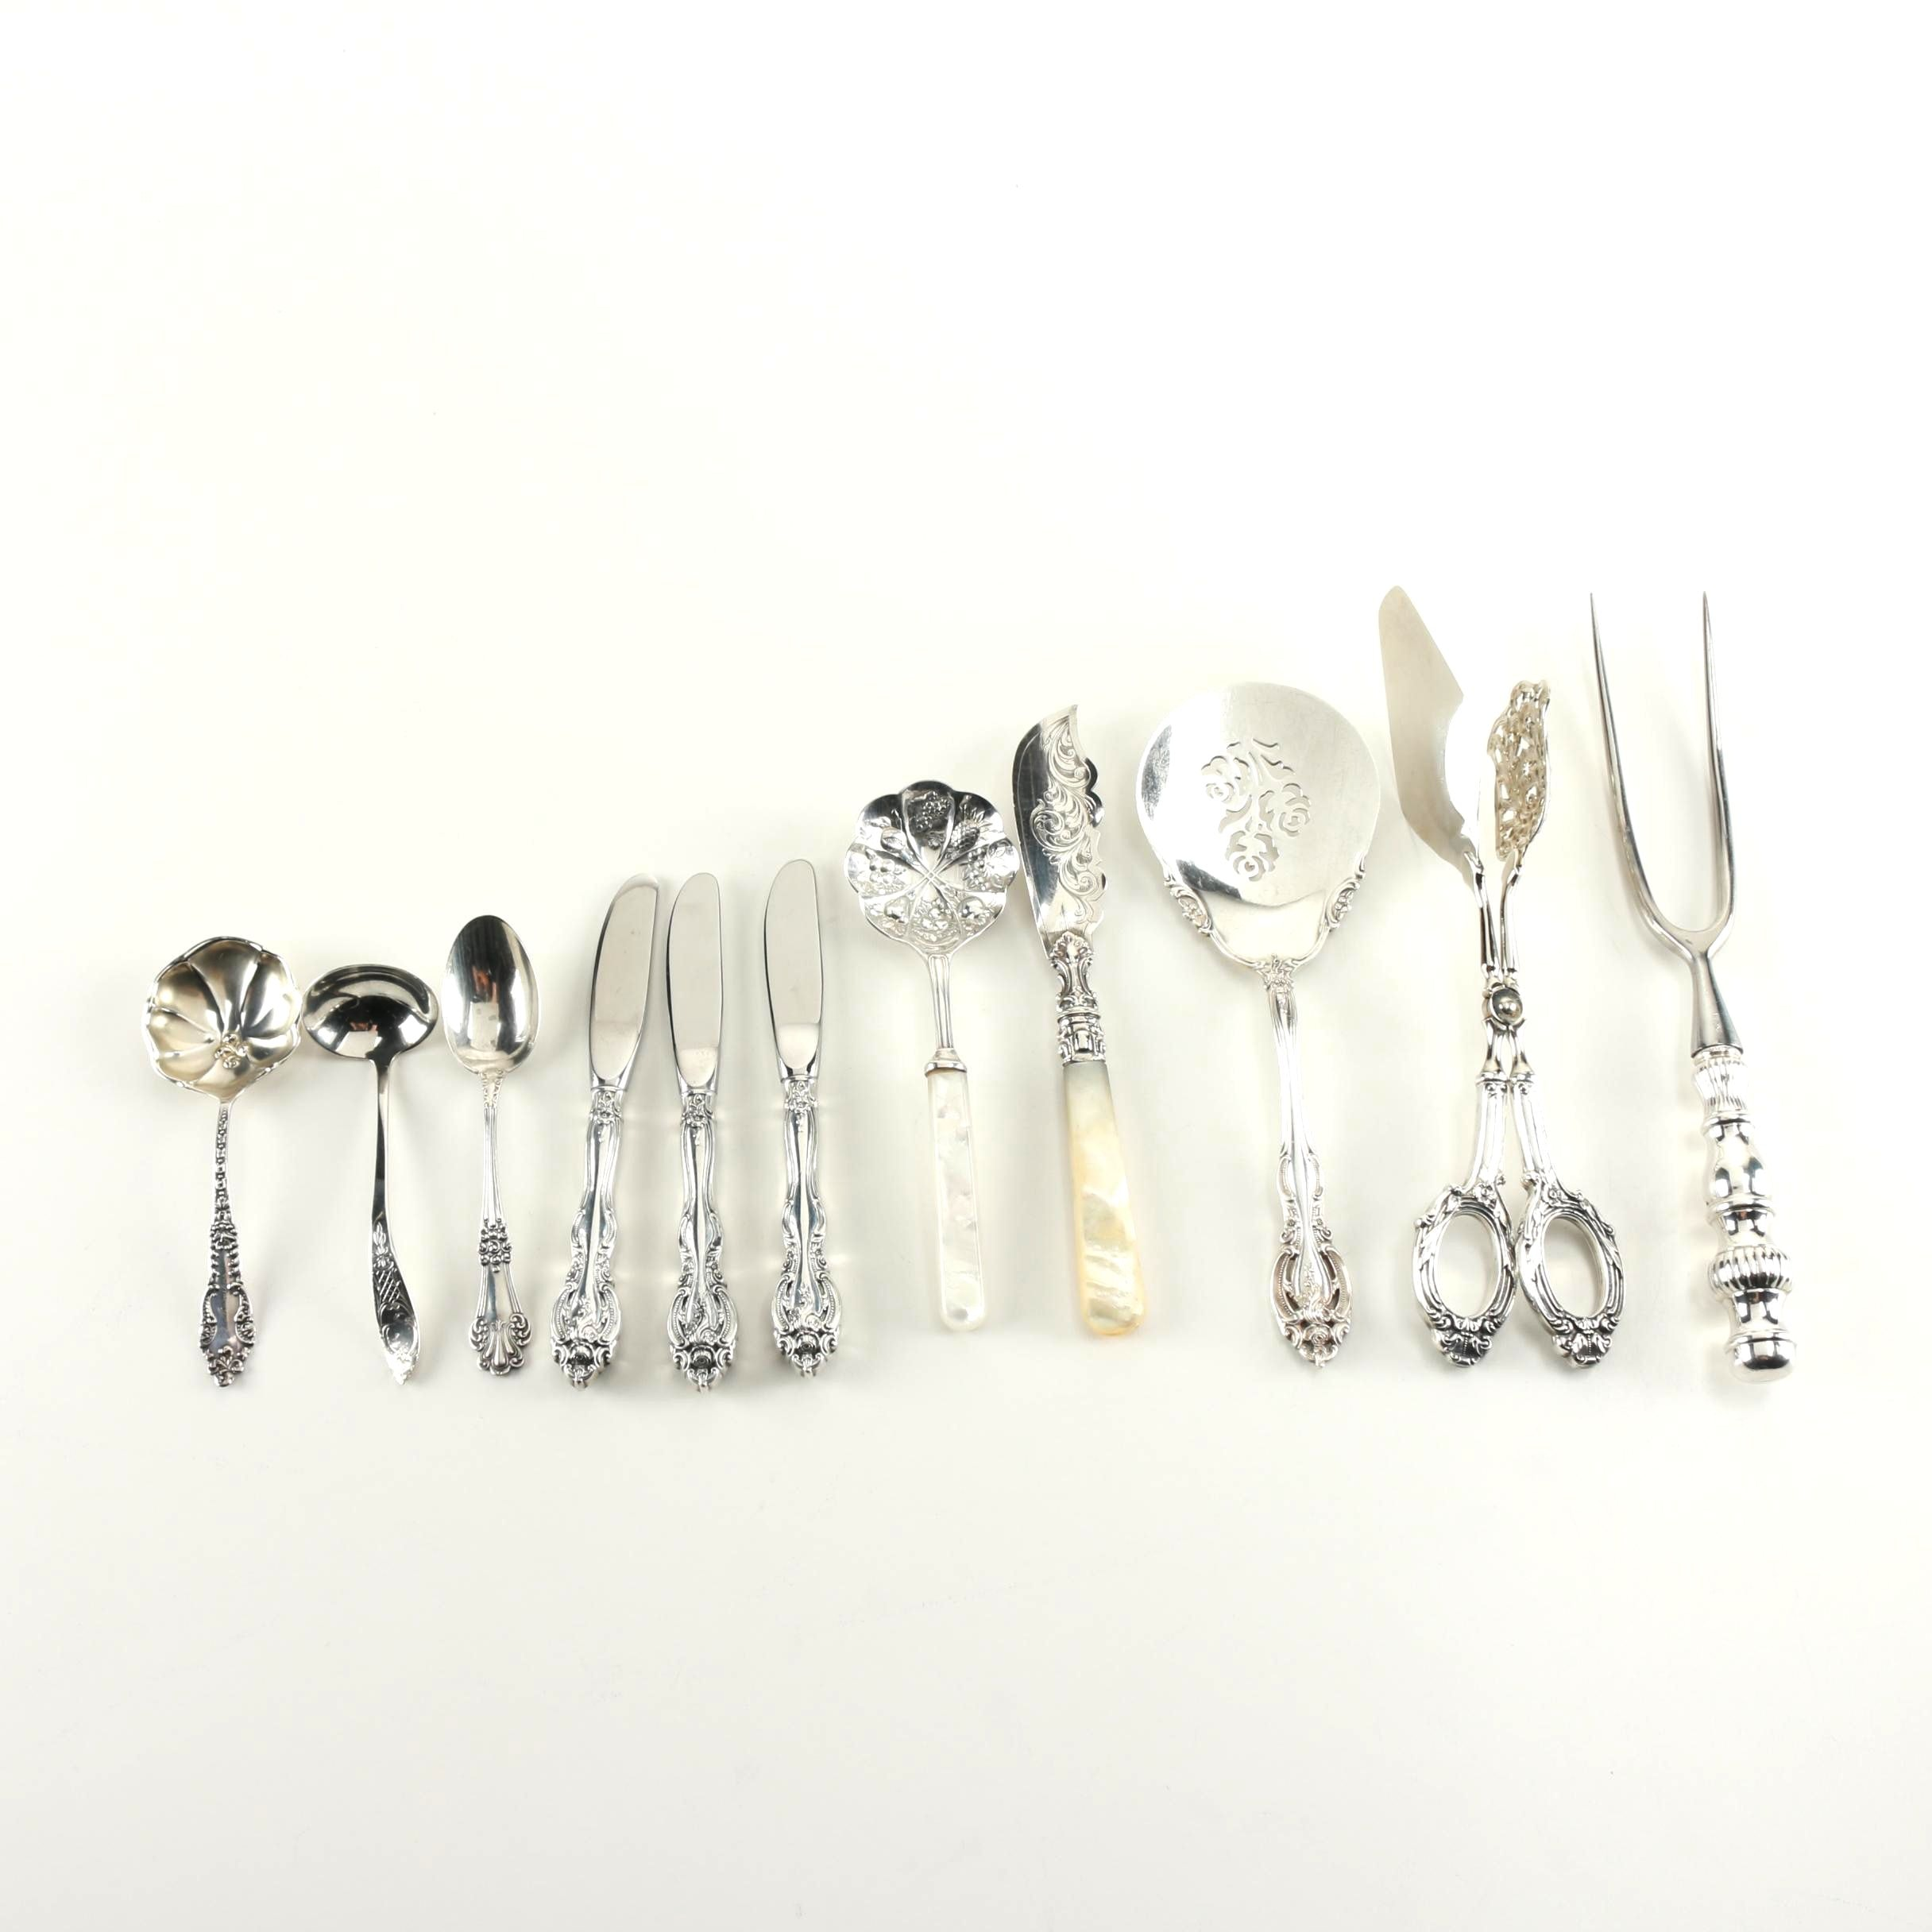 Sterling Silver Flatware Including Serving Pieces